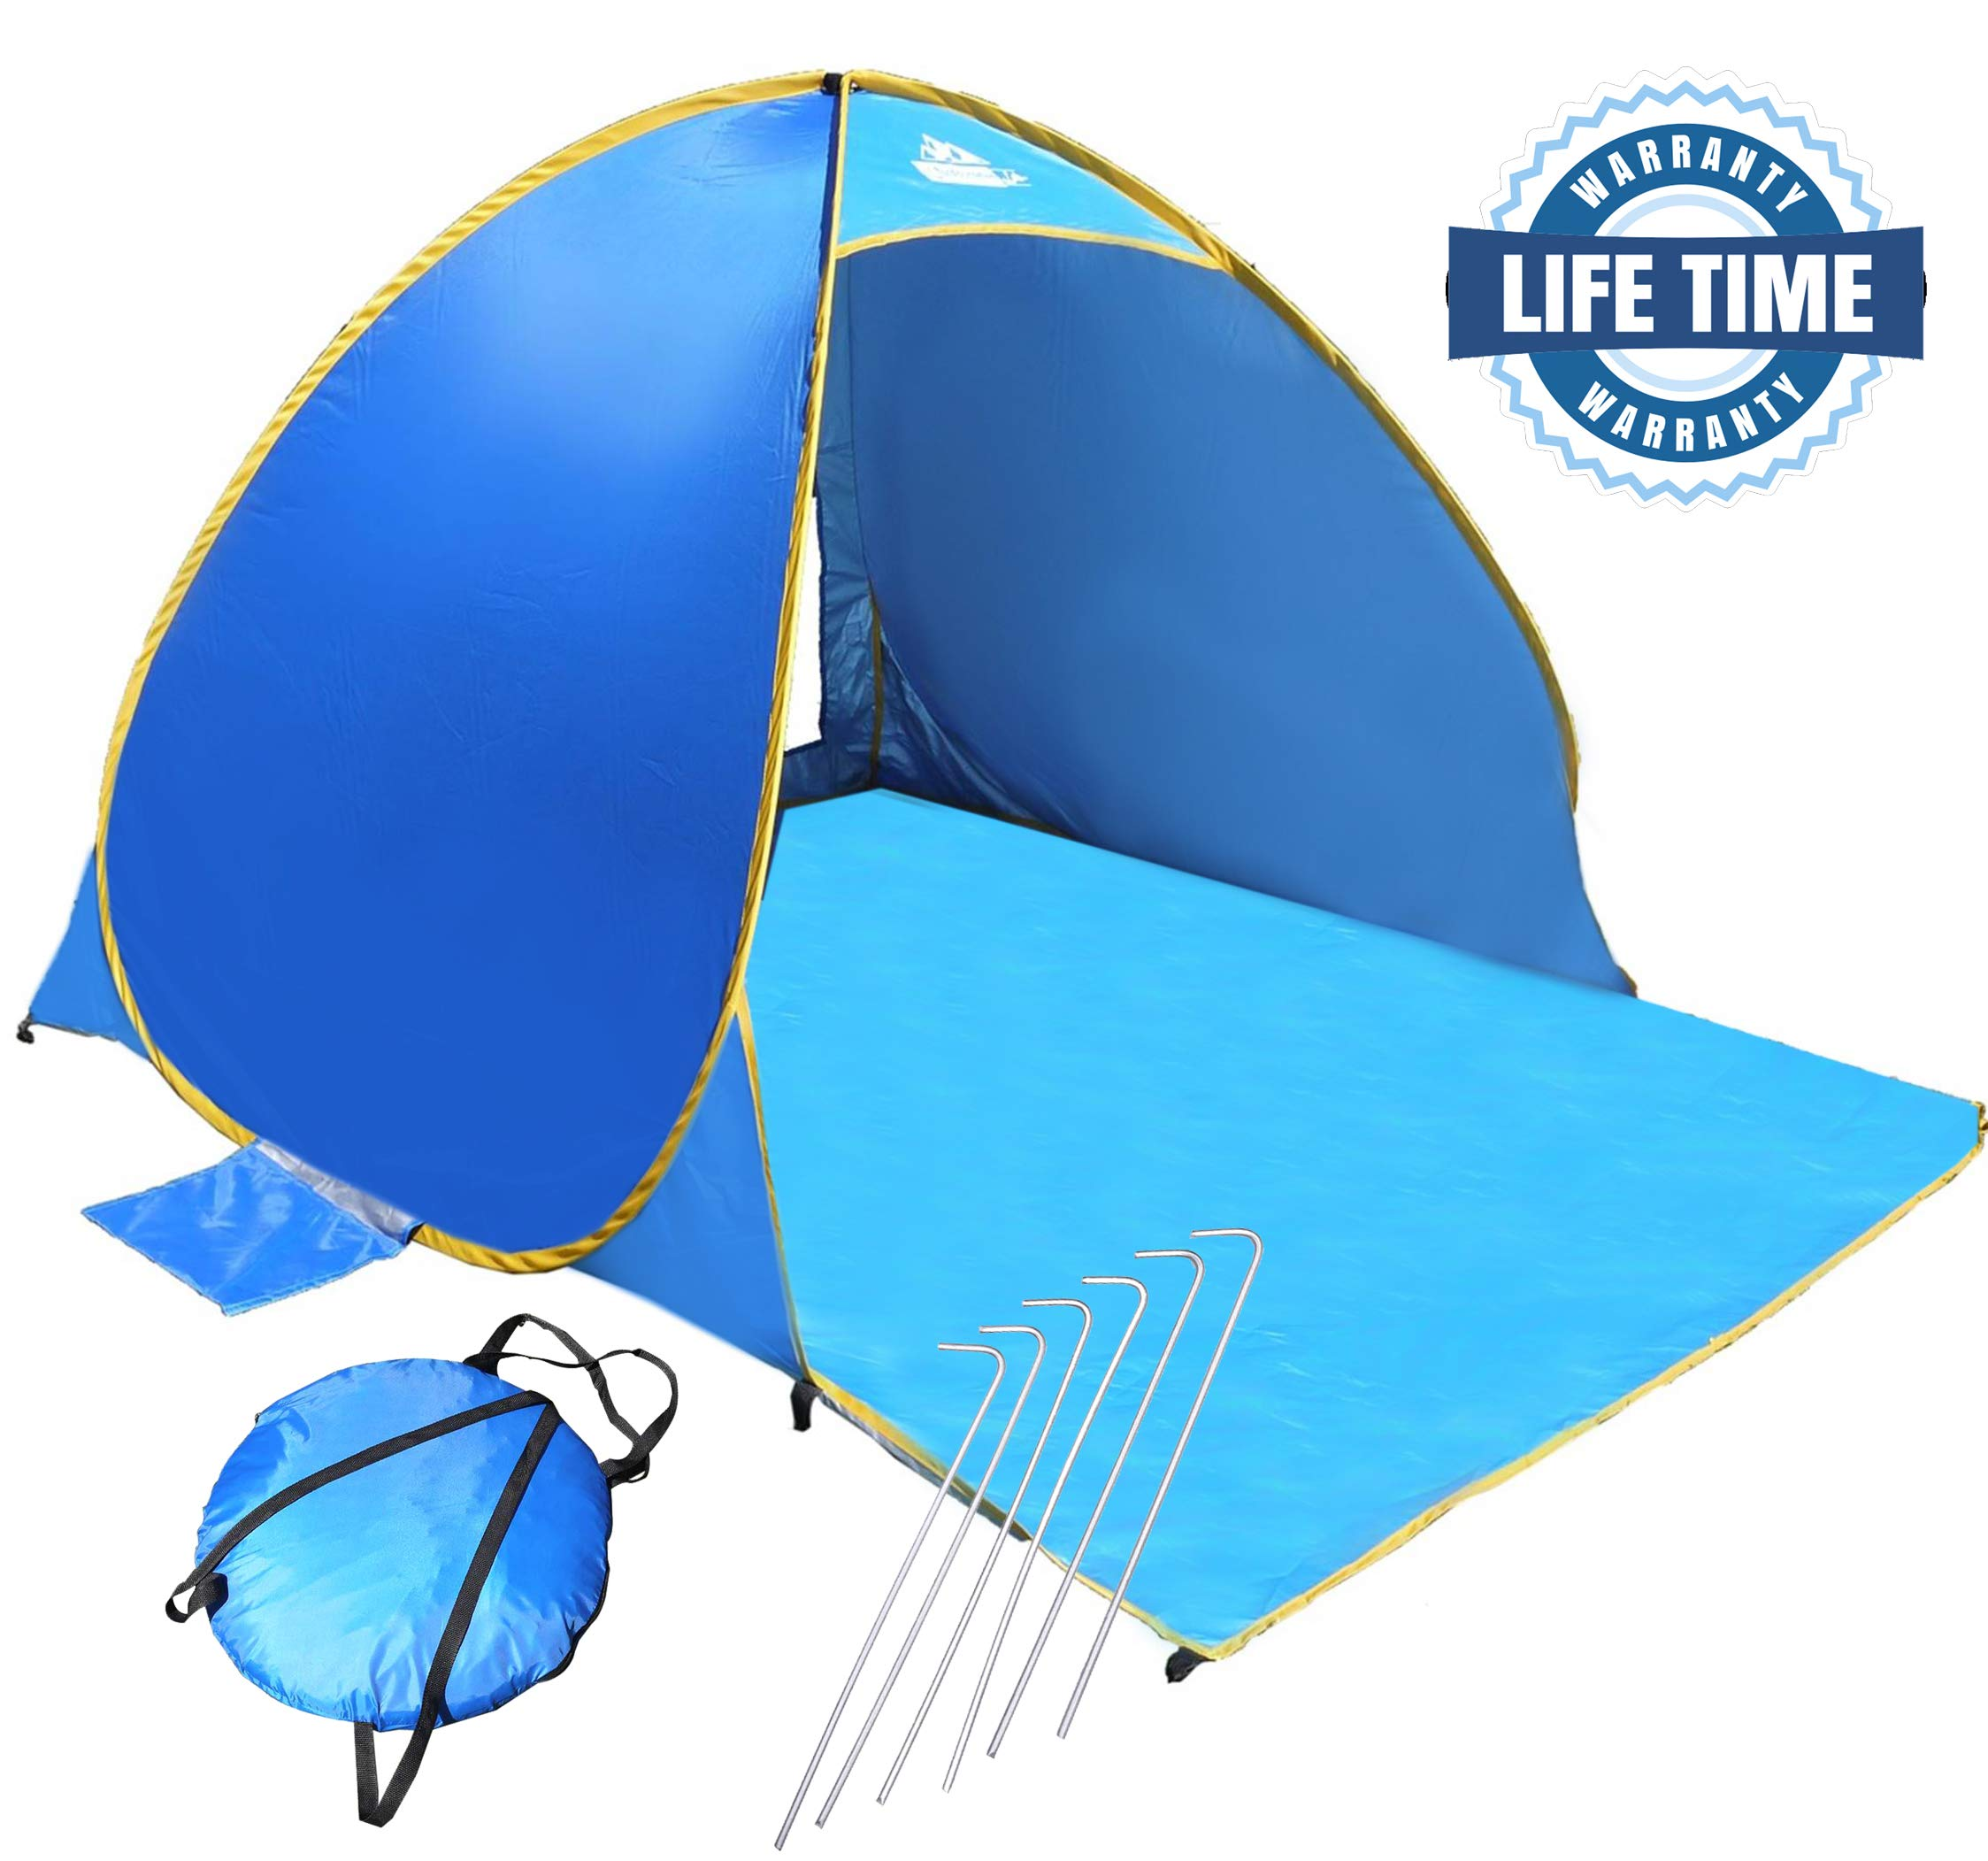 OutdoorsmanLab Automatic Pop Up Beach Tent, Lightweight For Family with UV 50+ Protection, Easy Carrying Bag, Wind Resistant Features by Outdoorsman Lab